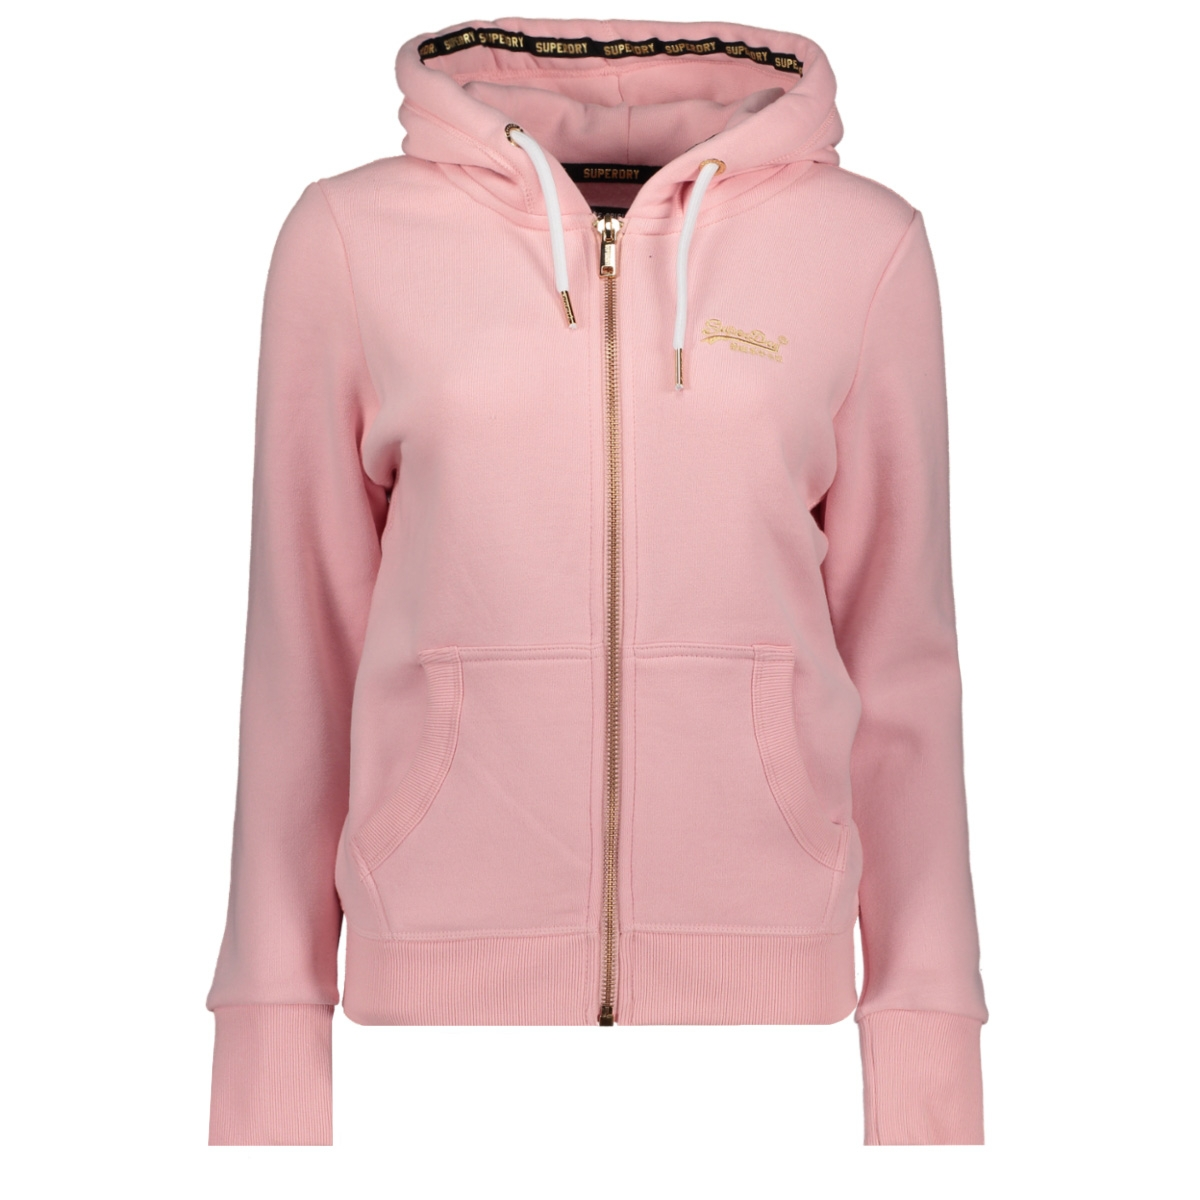 g20303at superdry vest fade pink